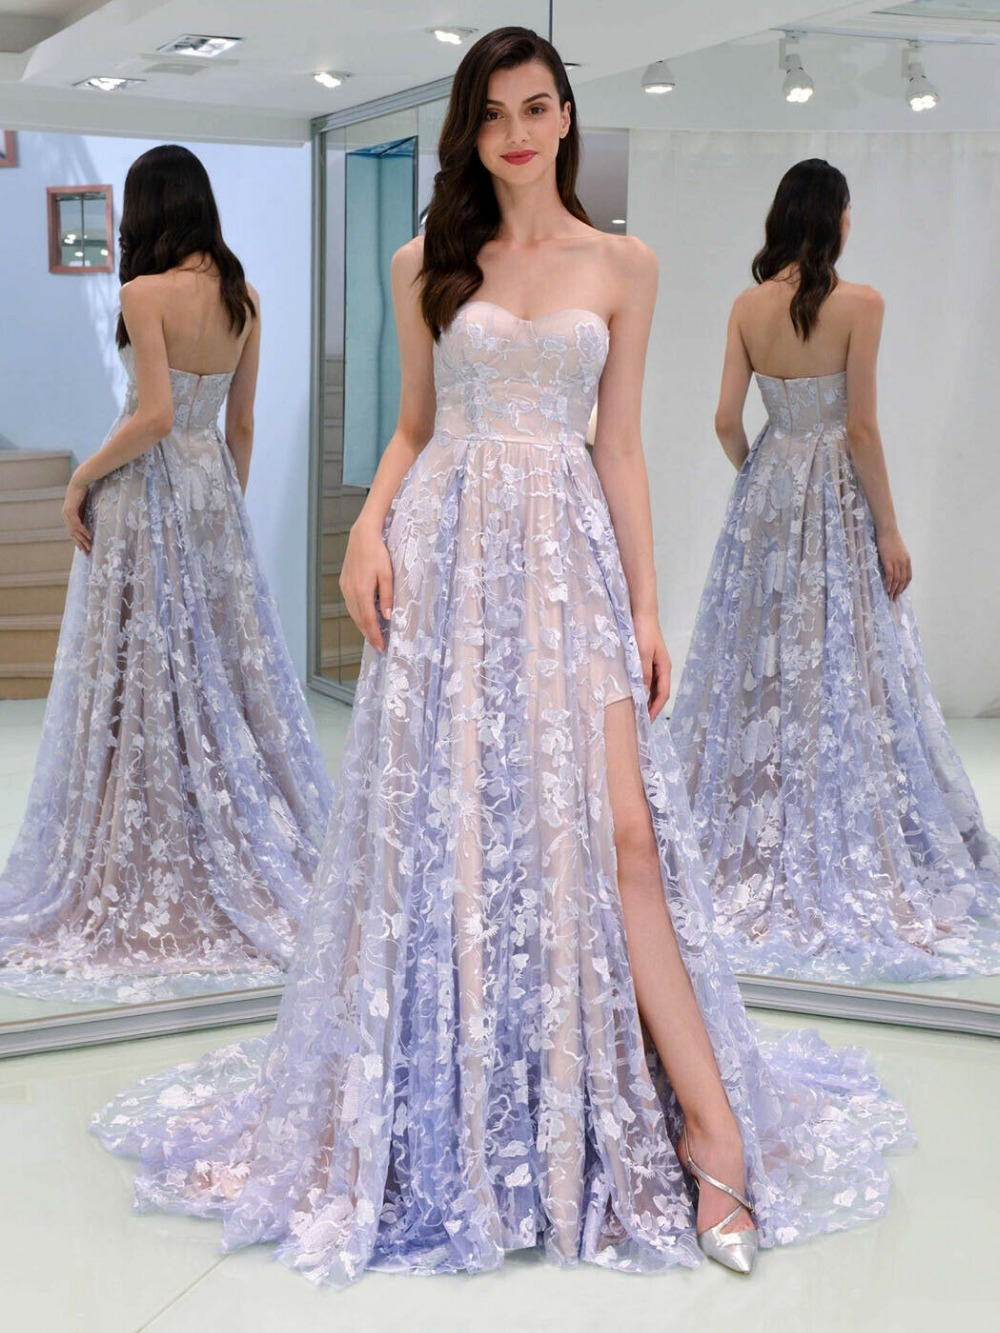 Strapless Evening dress Lace Long skirt Sexy off-the-shoulder Dress Prom Tail